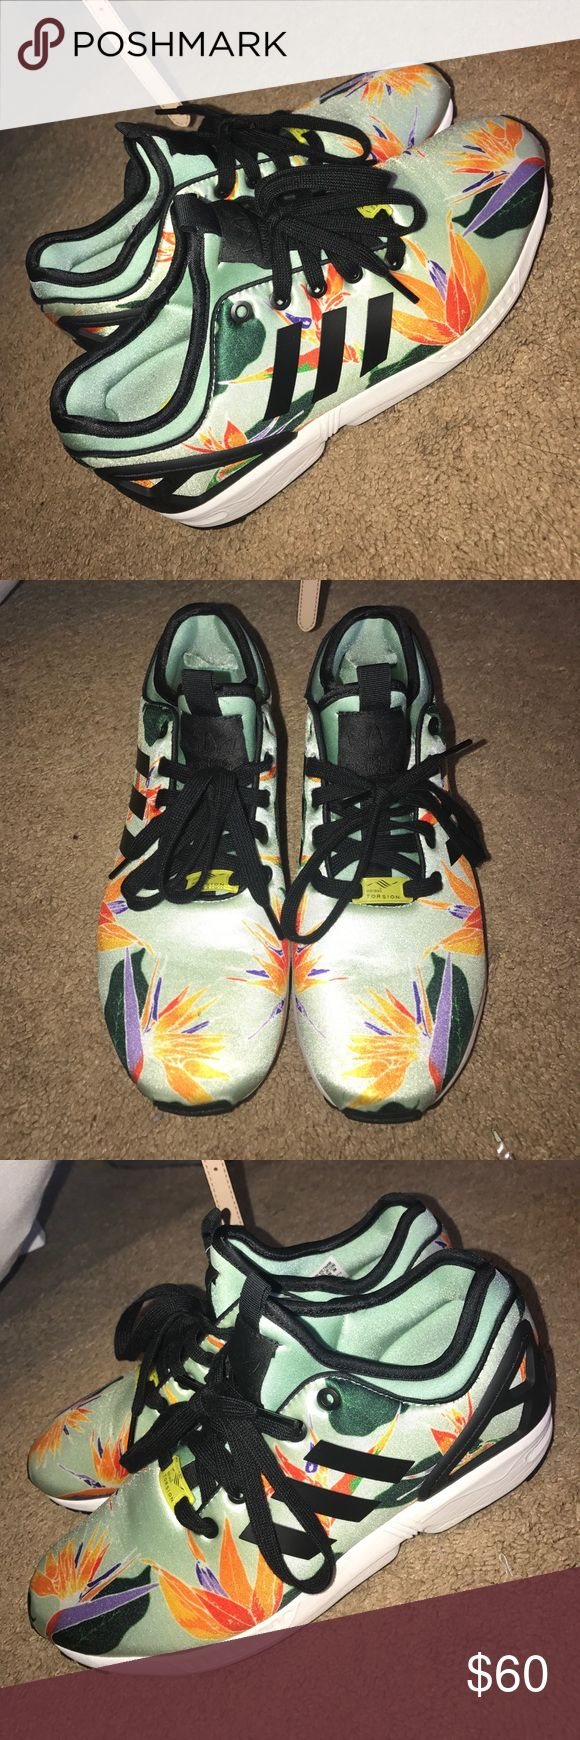 Adidas ZX Flux Floral Edition Adidas Torsion adidas Shoes Sneakers